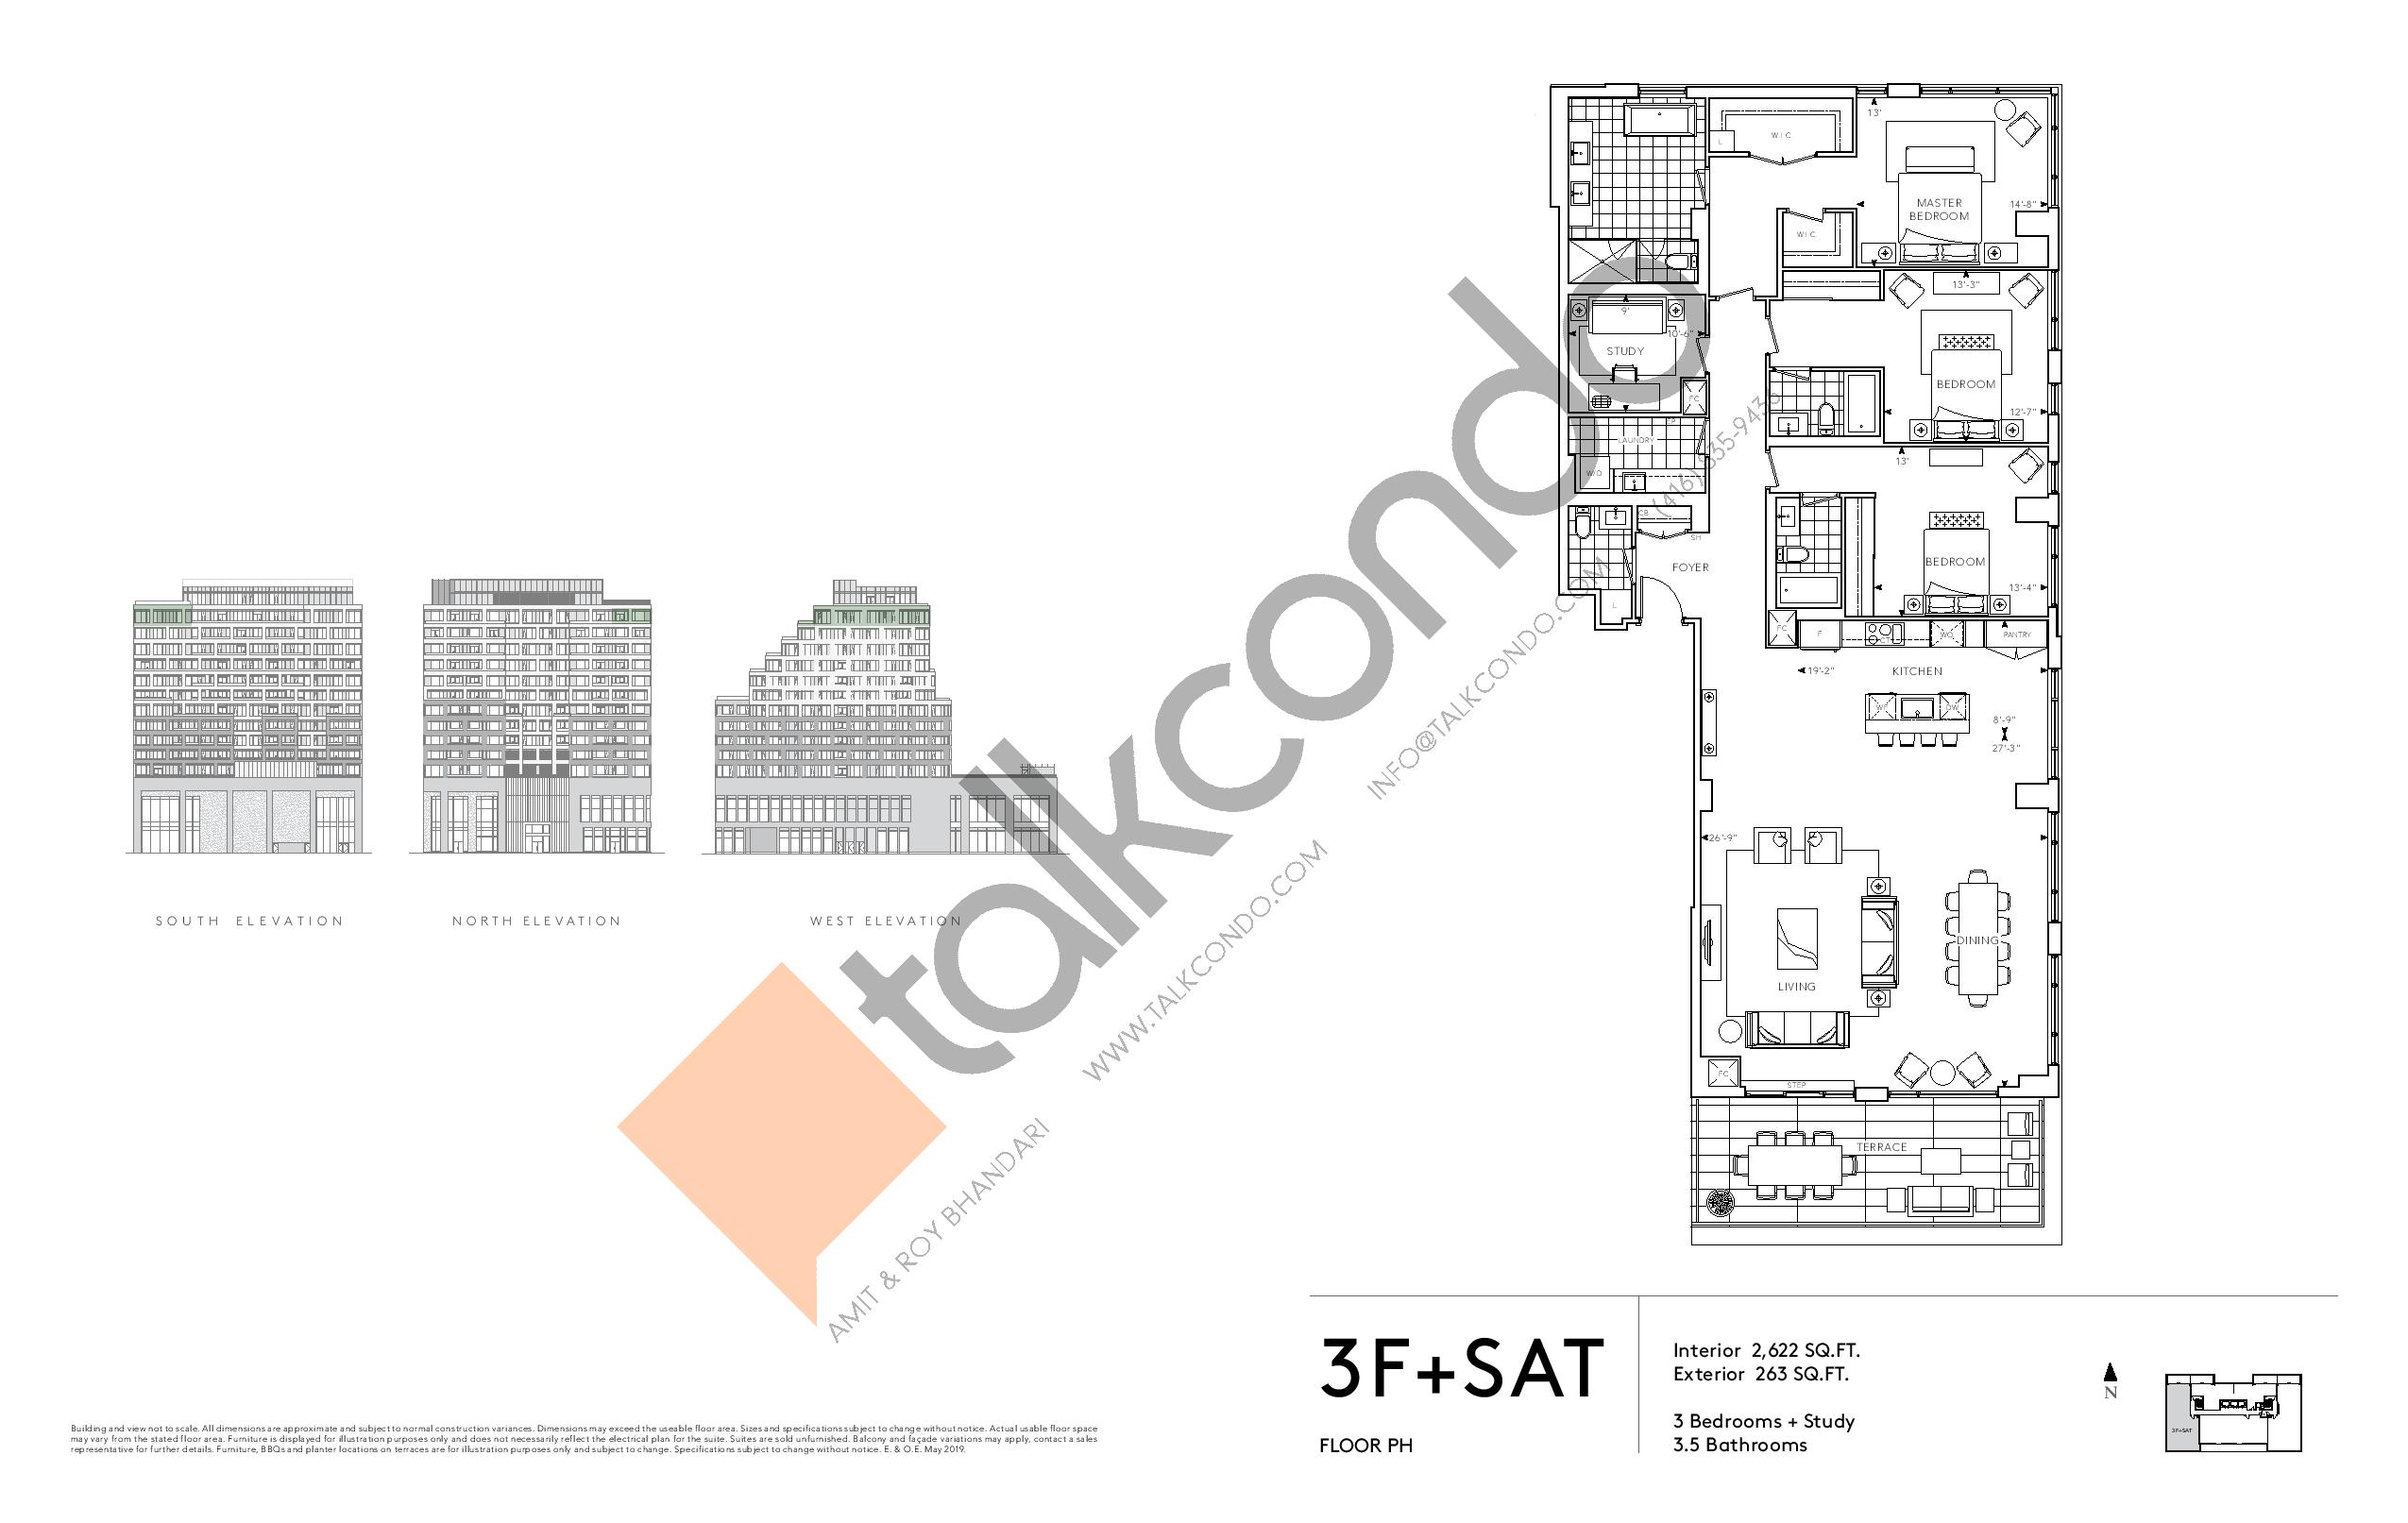 3F+SAT - Signature Series Floor Plan at Tridel at The Well Condos - 2622 sq.ft